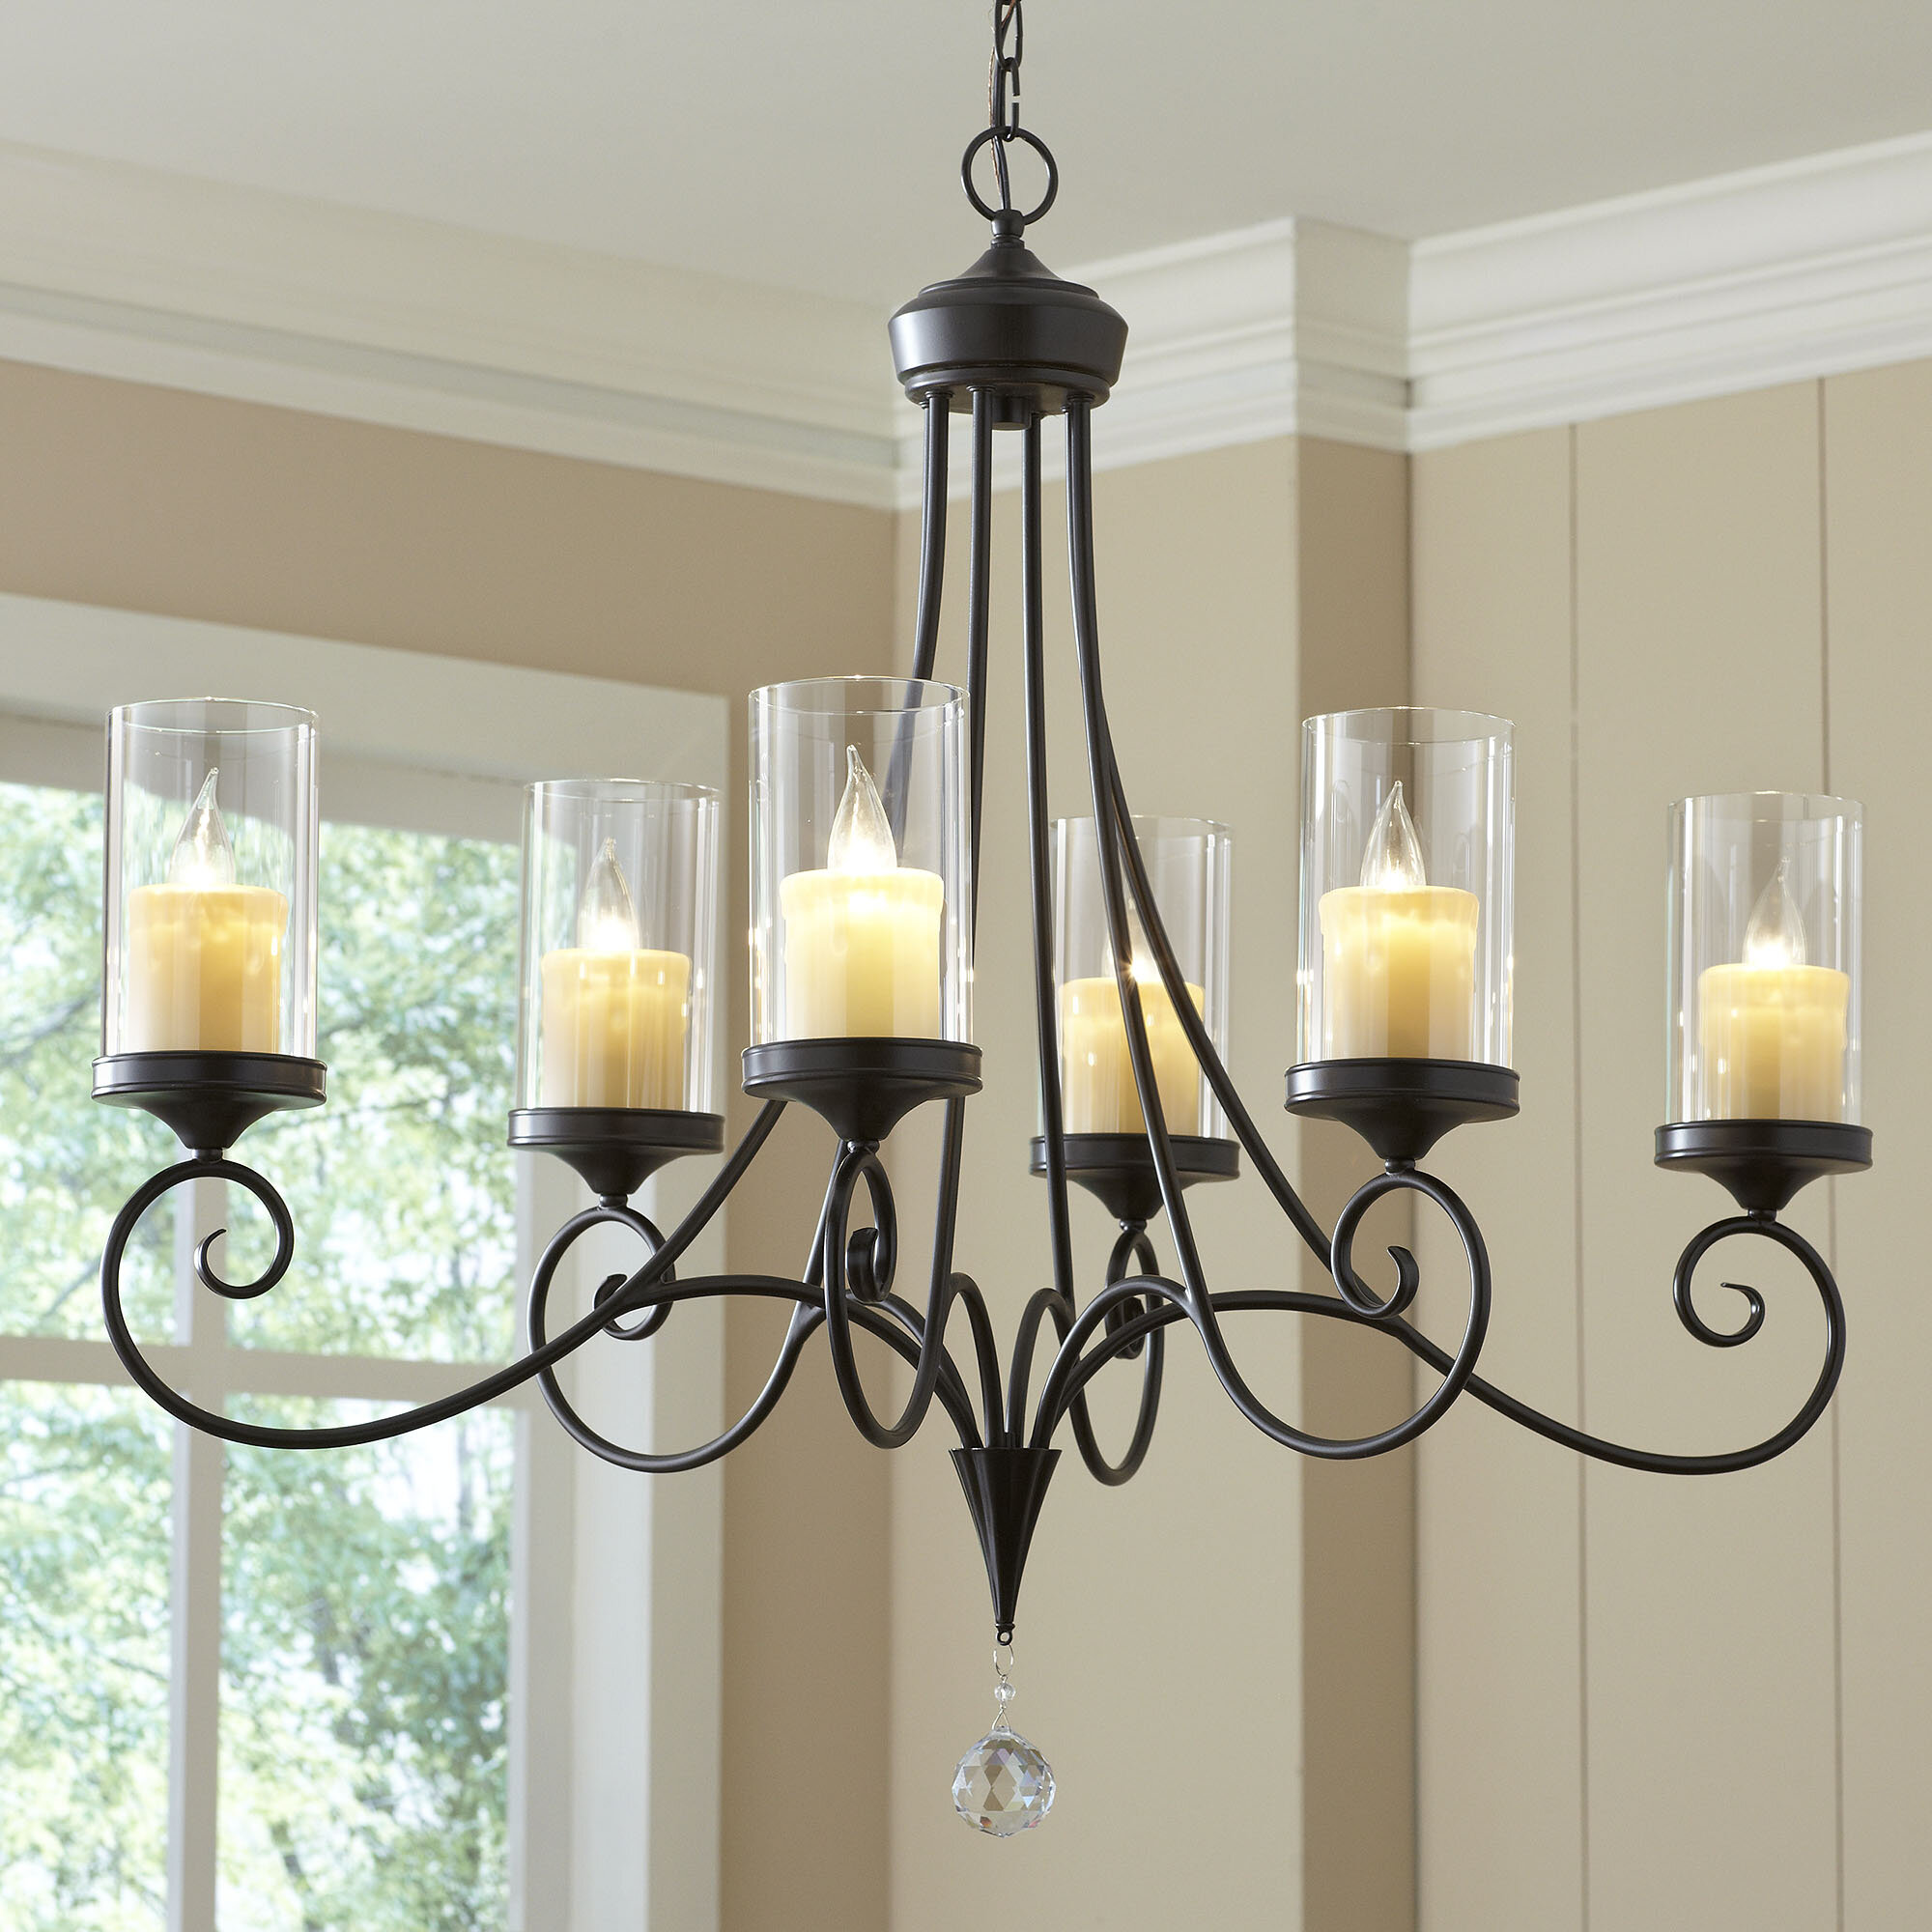 Osbourne 6 Light Candle Style Chandelier & Reviews